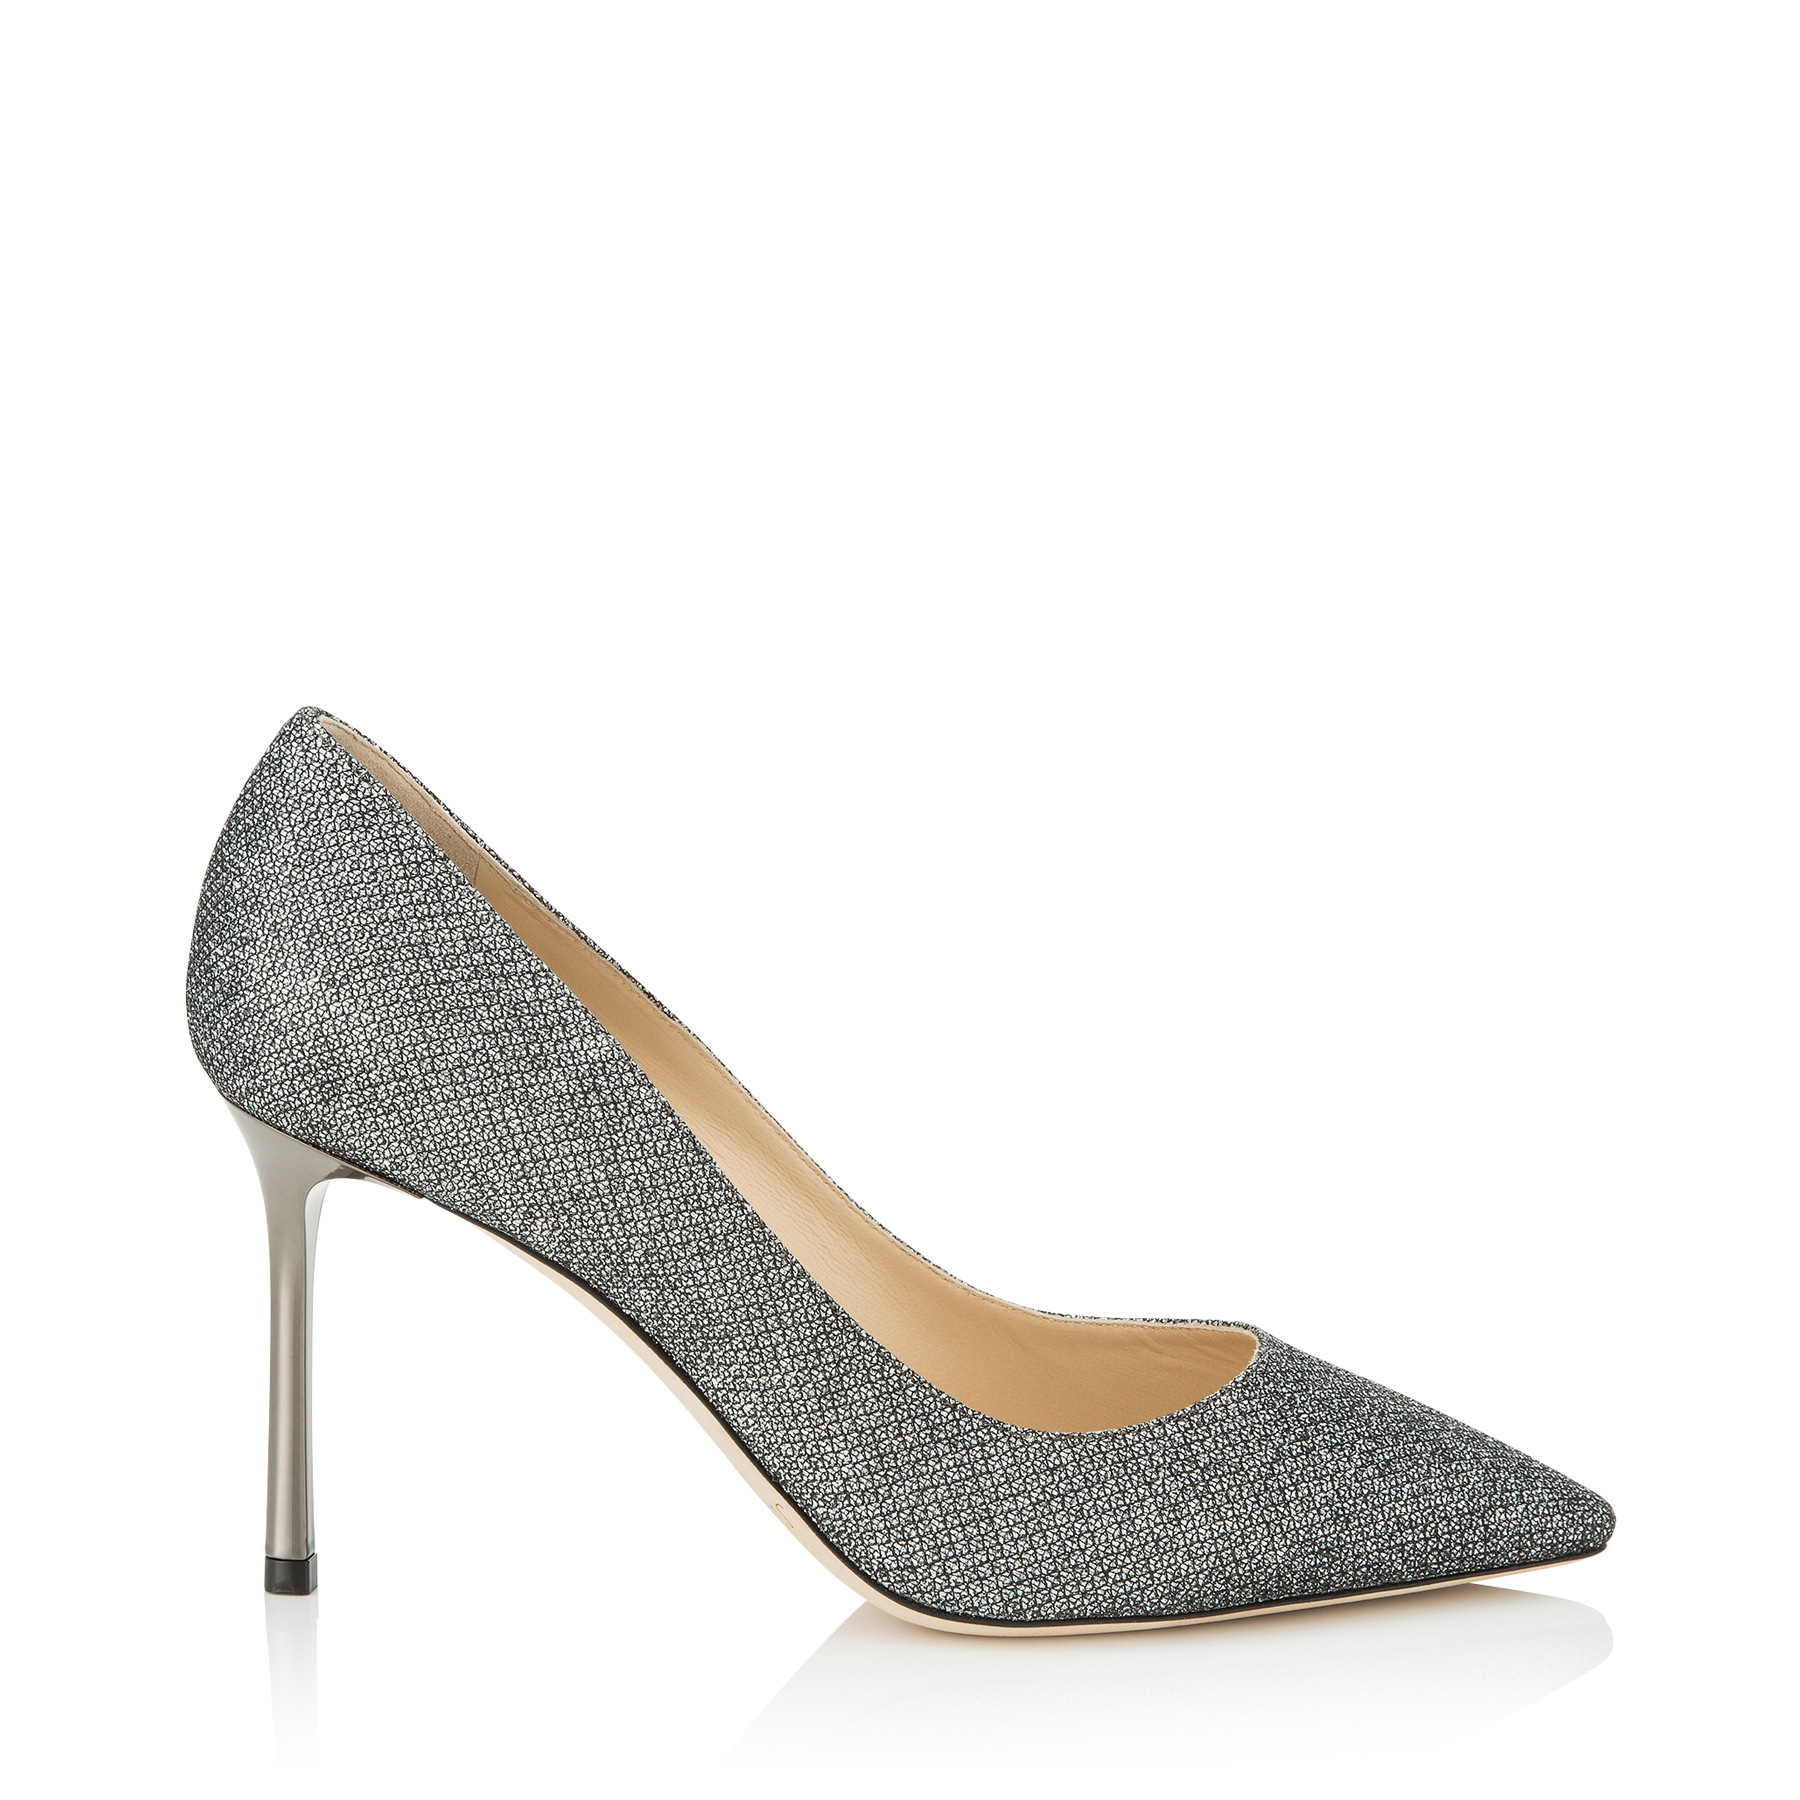 ROMY 85 Anthracite Lamé Glitter Pointy Toe Pumps